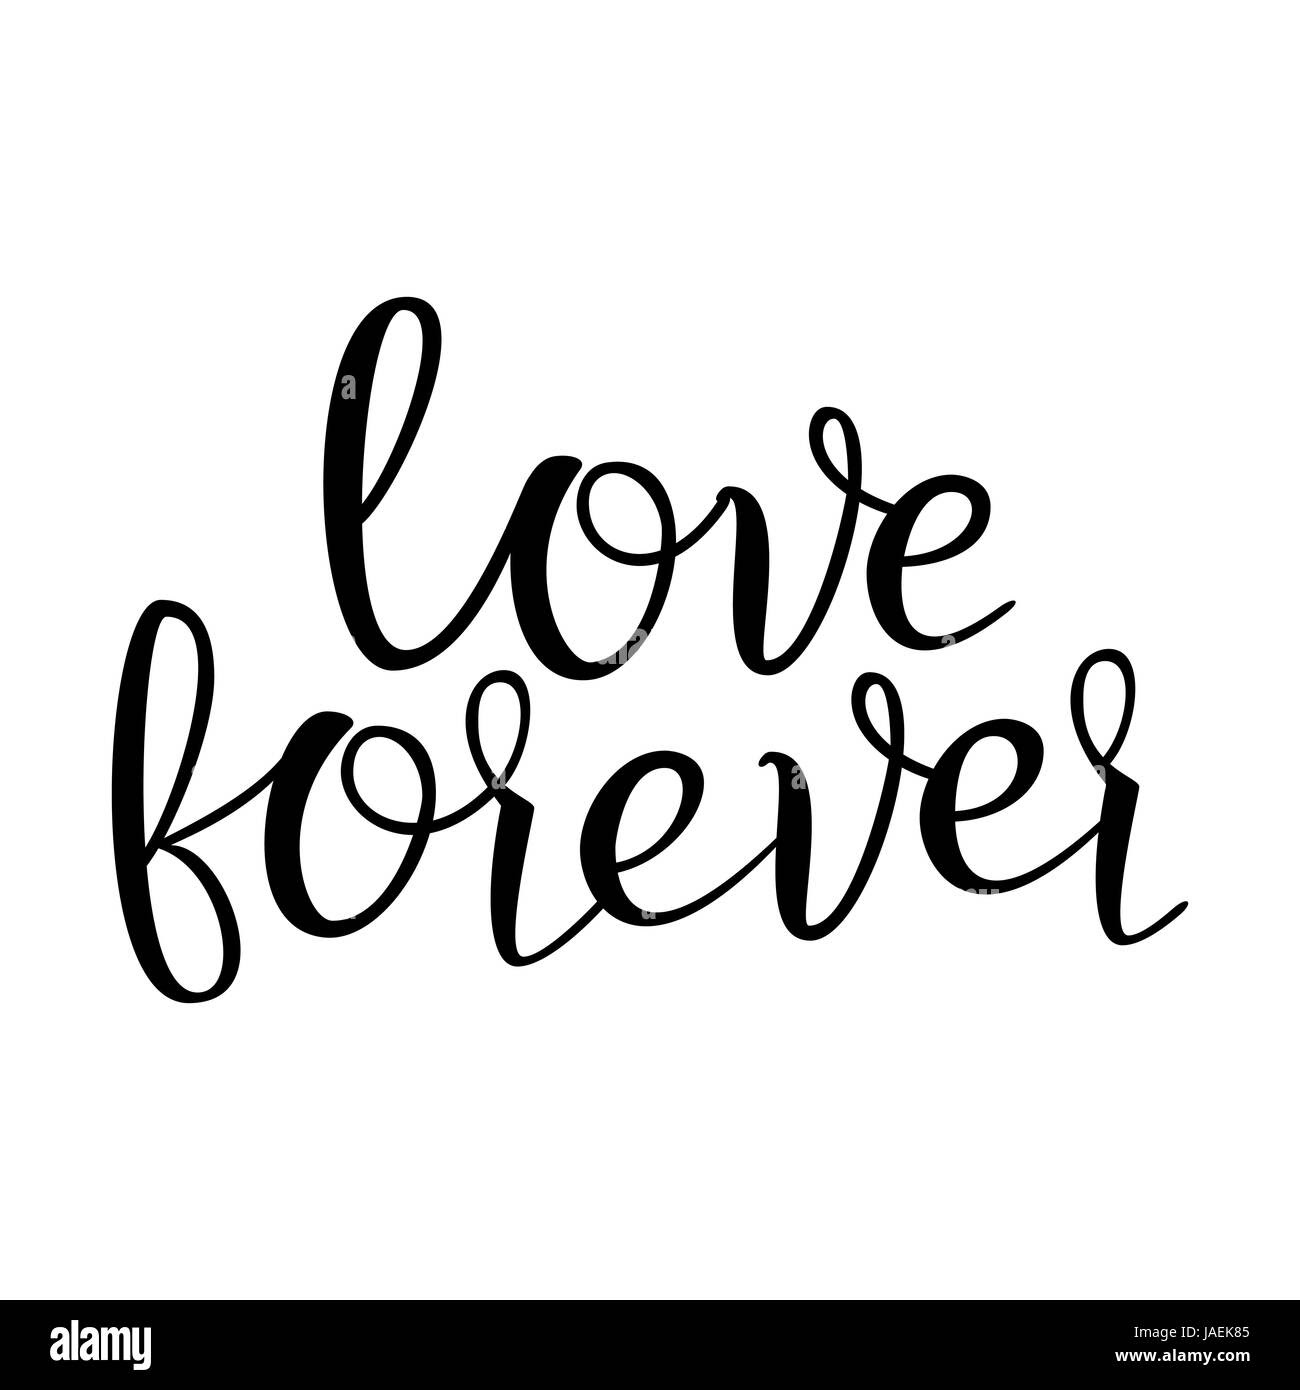 Quote About Love Love Forever Handwritten Inspirational Text Modern Brush Calligraphy Isolated